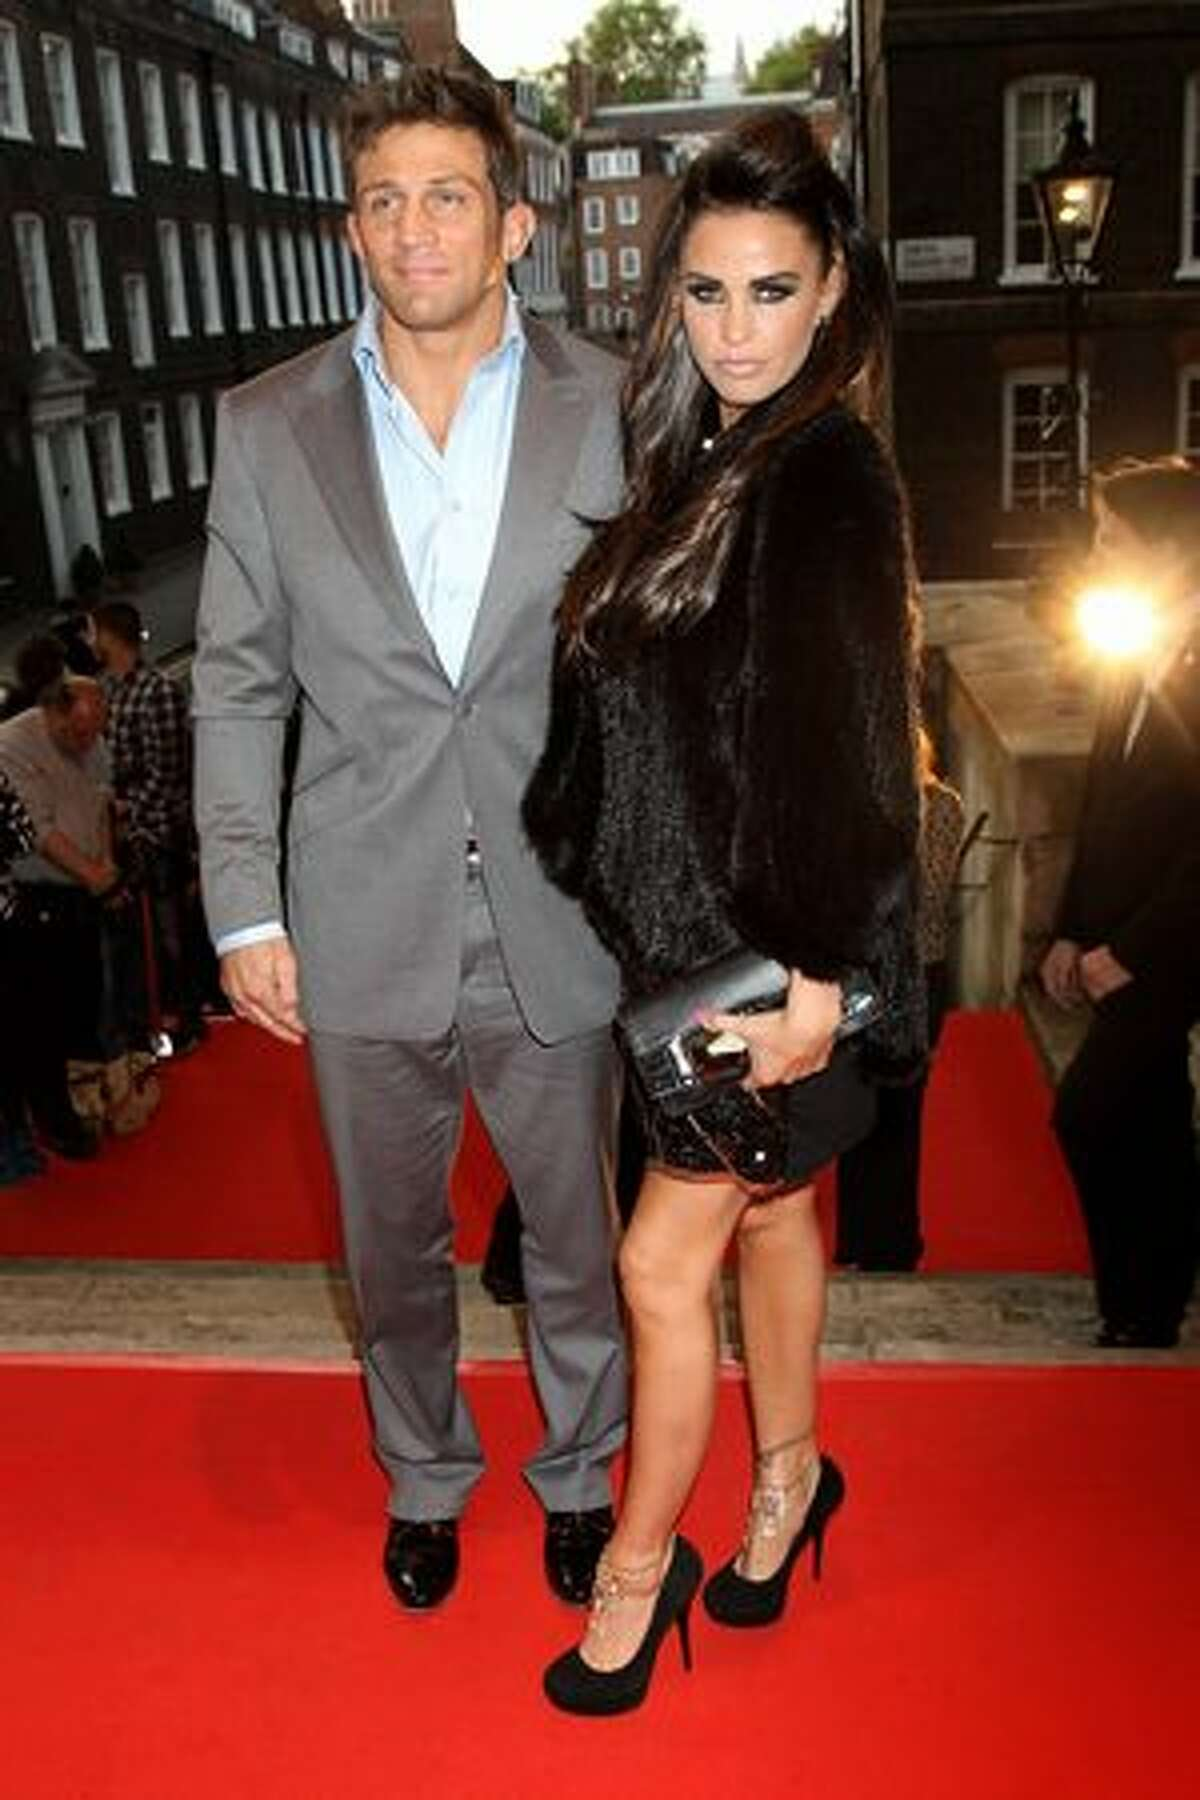 Alex Reid and Katie Price arrive at the Keep A Child Alive Black Ball held at St John's, Smith Square on Thursday, May 27 in London, England.